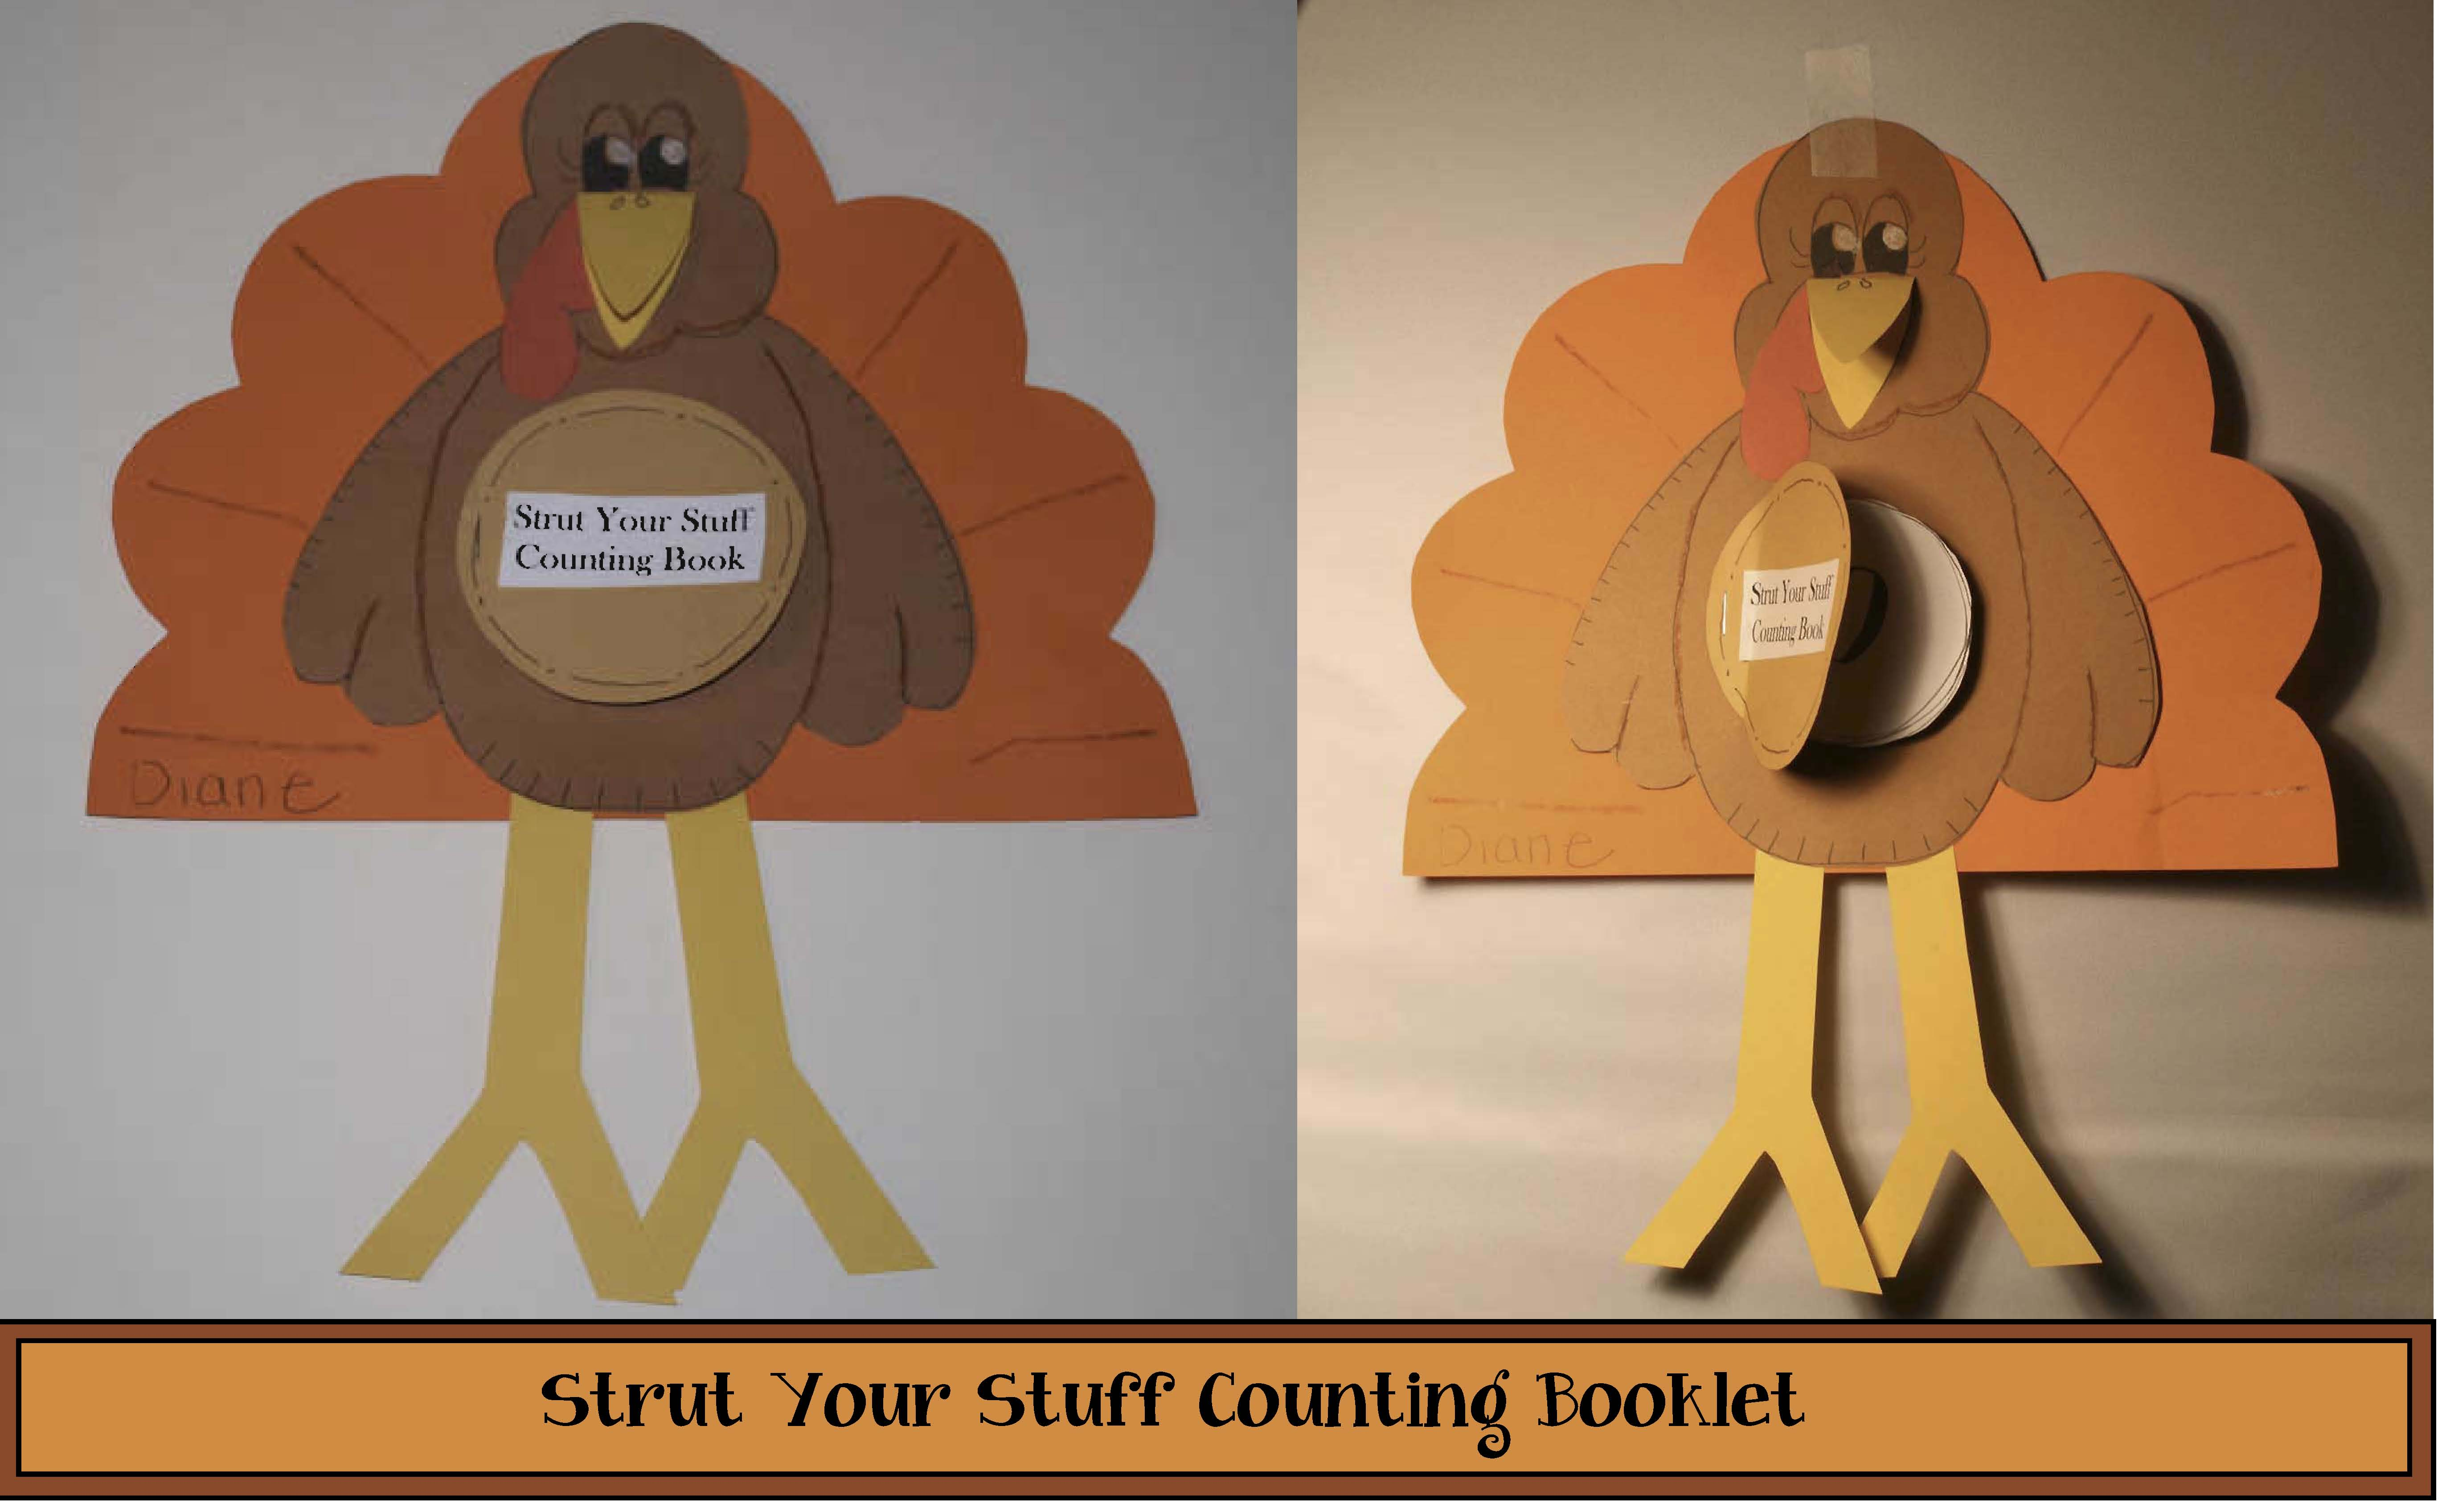 turkey arts and crafts, turkey activities, turkey crafts, turkey craftivities, turkey bulletin boards, november bulletin boards, november arts and crafts, thankgsgiving bulletin boards, thanksgiving crafts, shape activities, thanksgiving poems, turkey centers